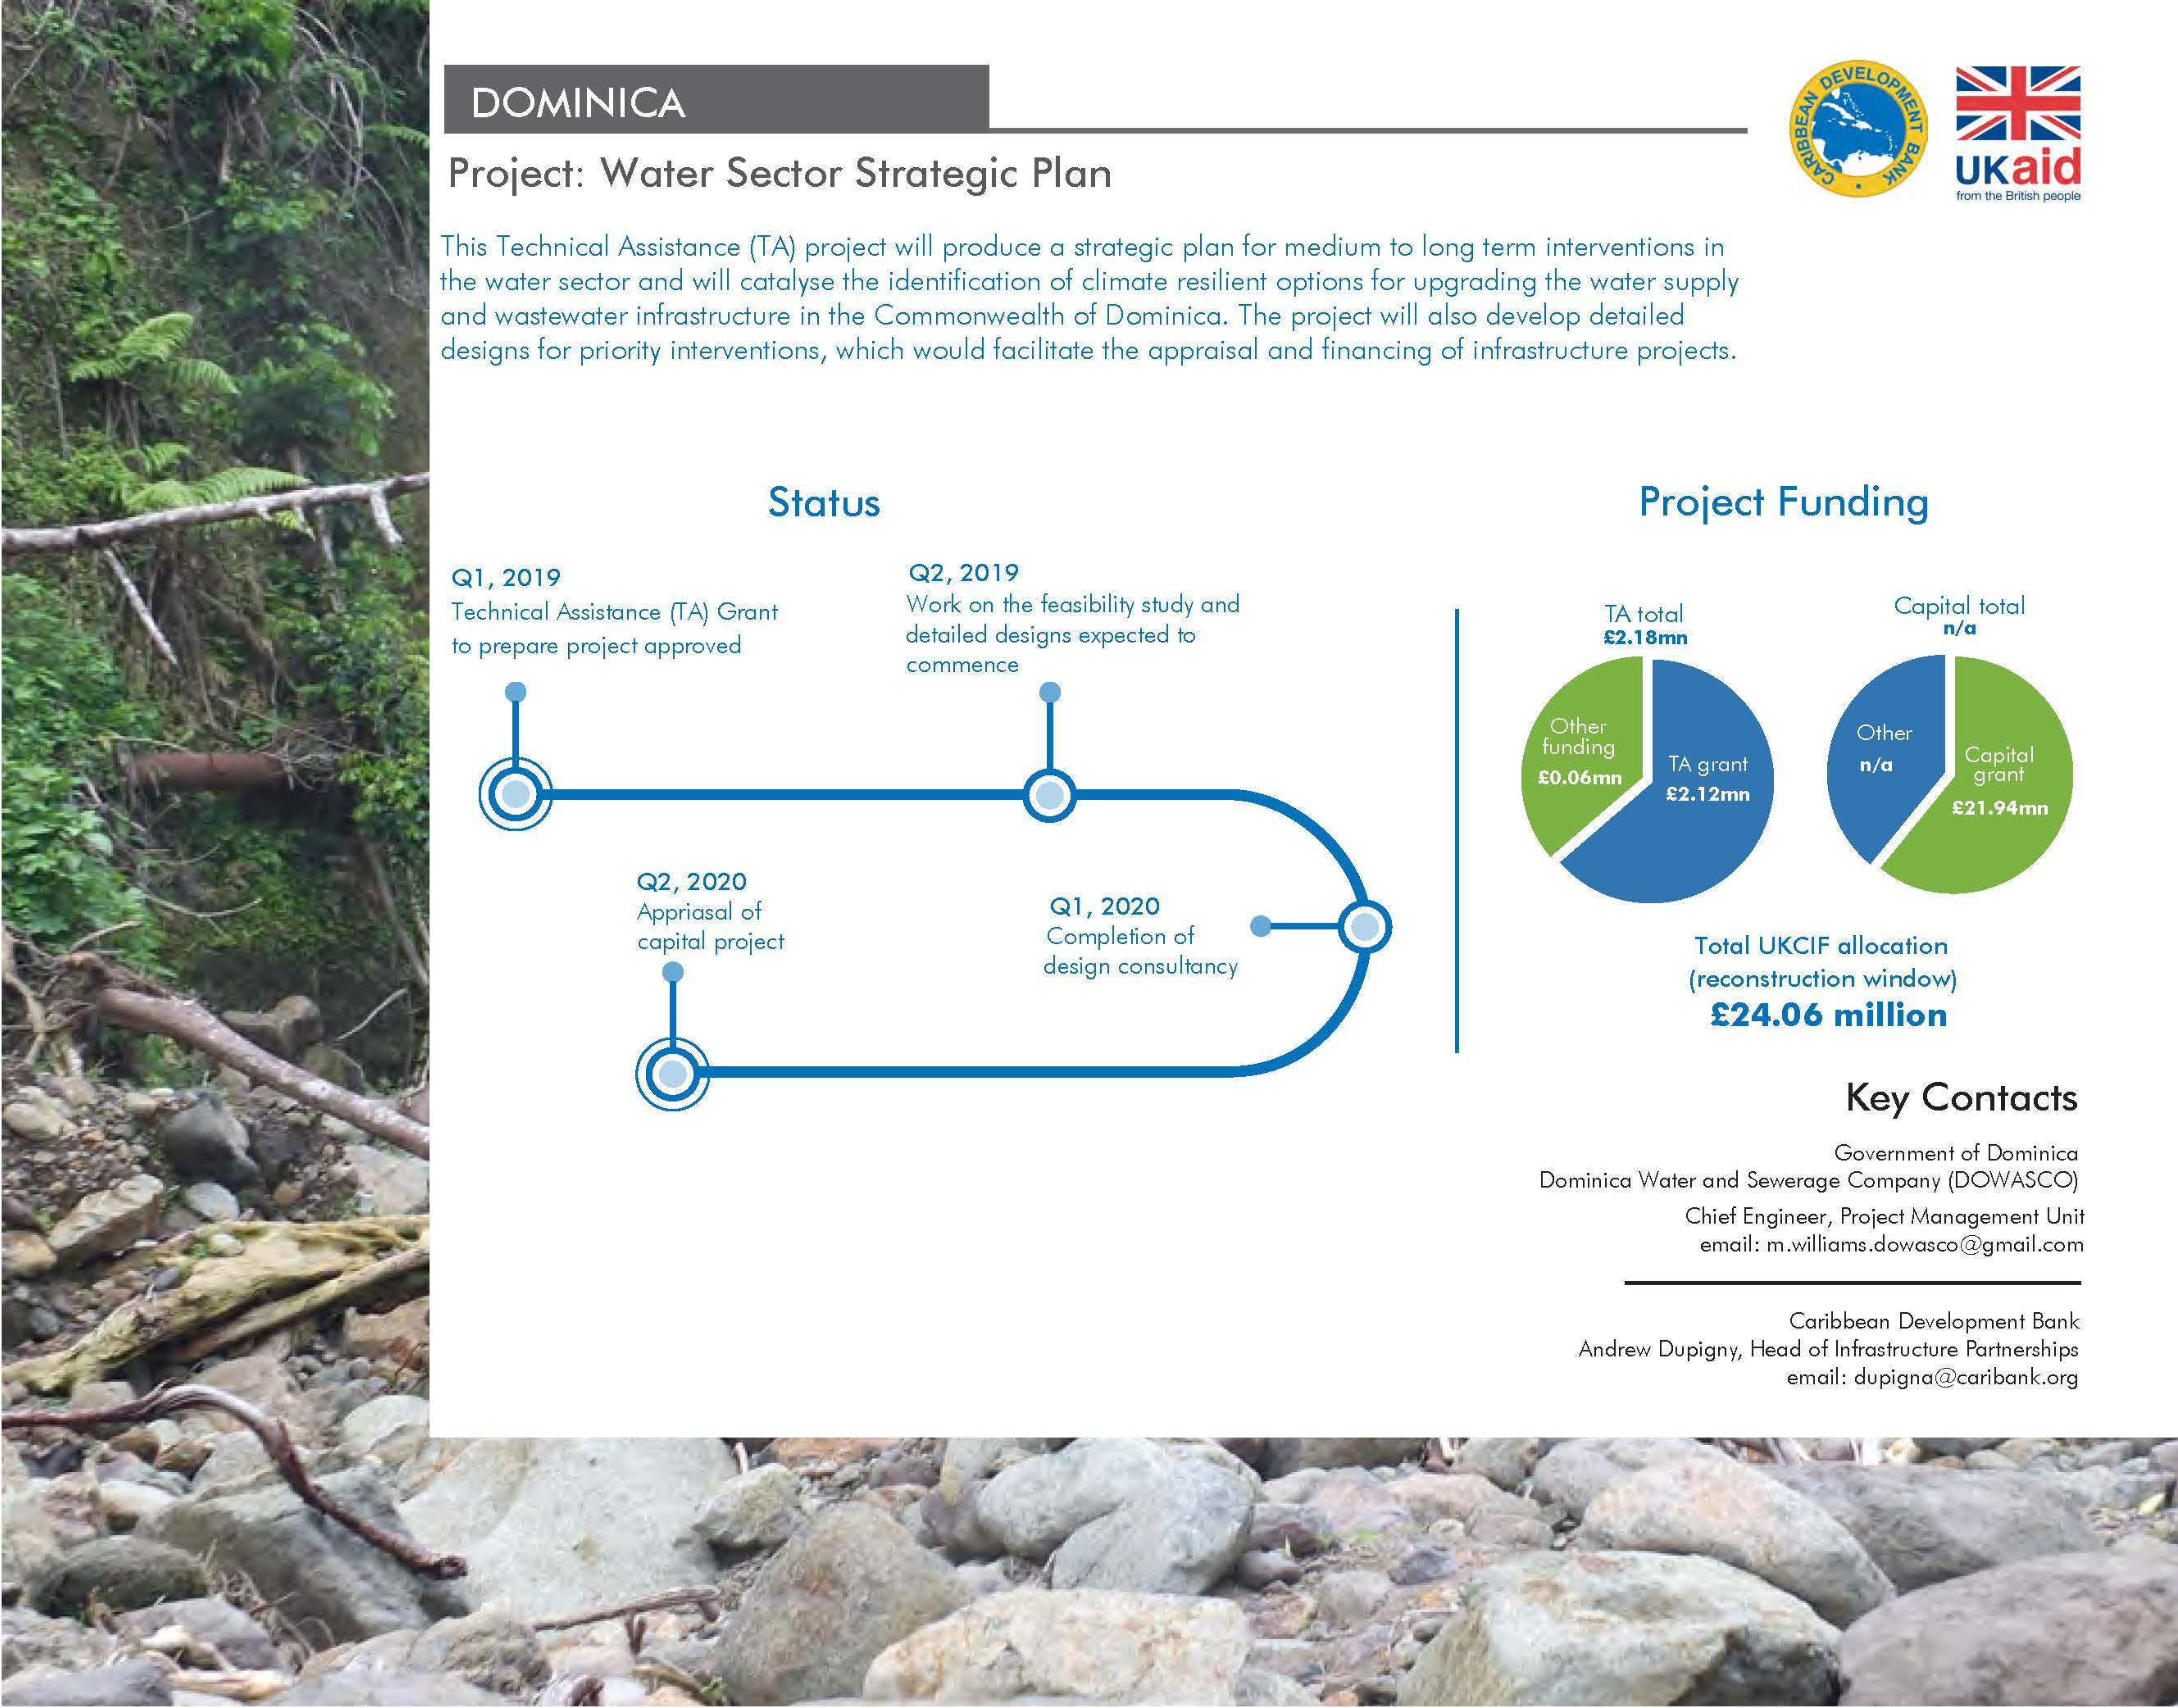 project profile with background image of a rocky area with text and charts against white backdrop